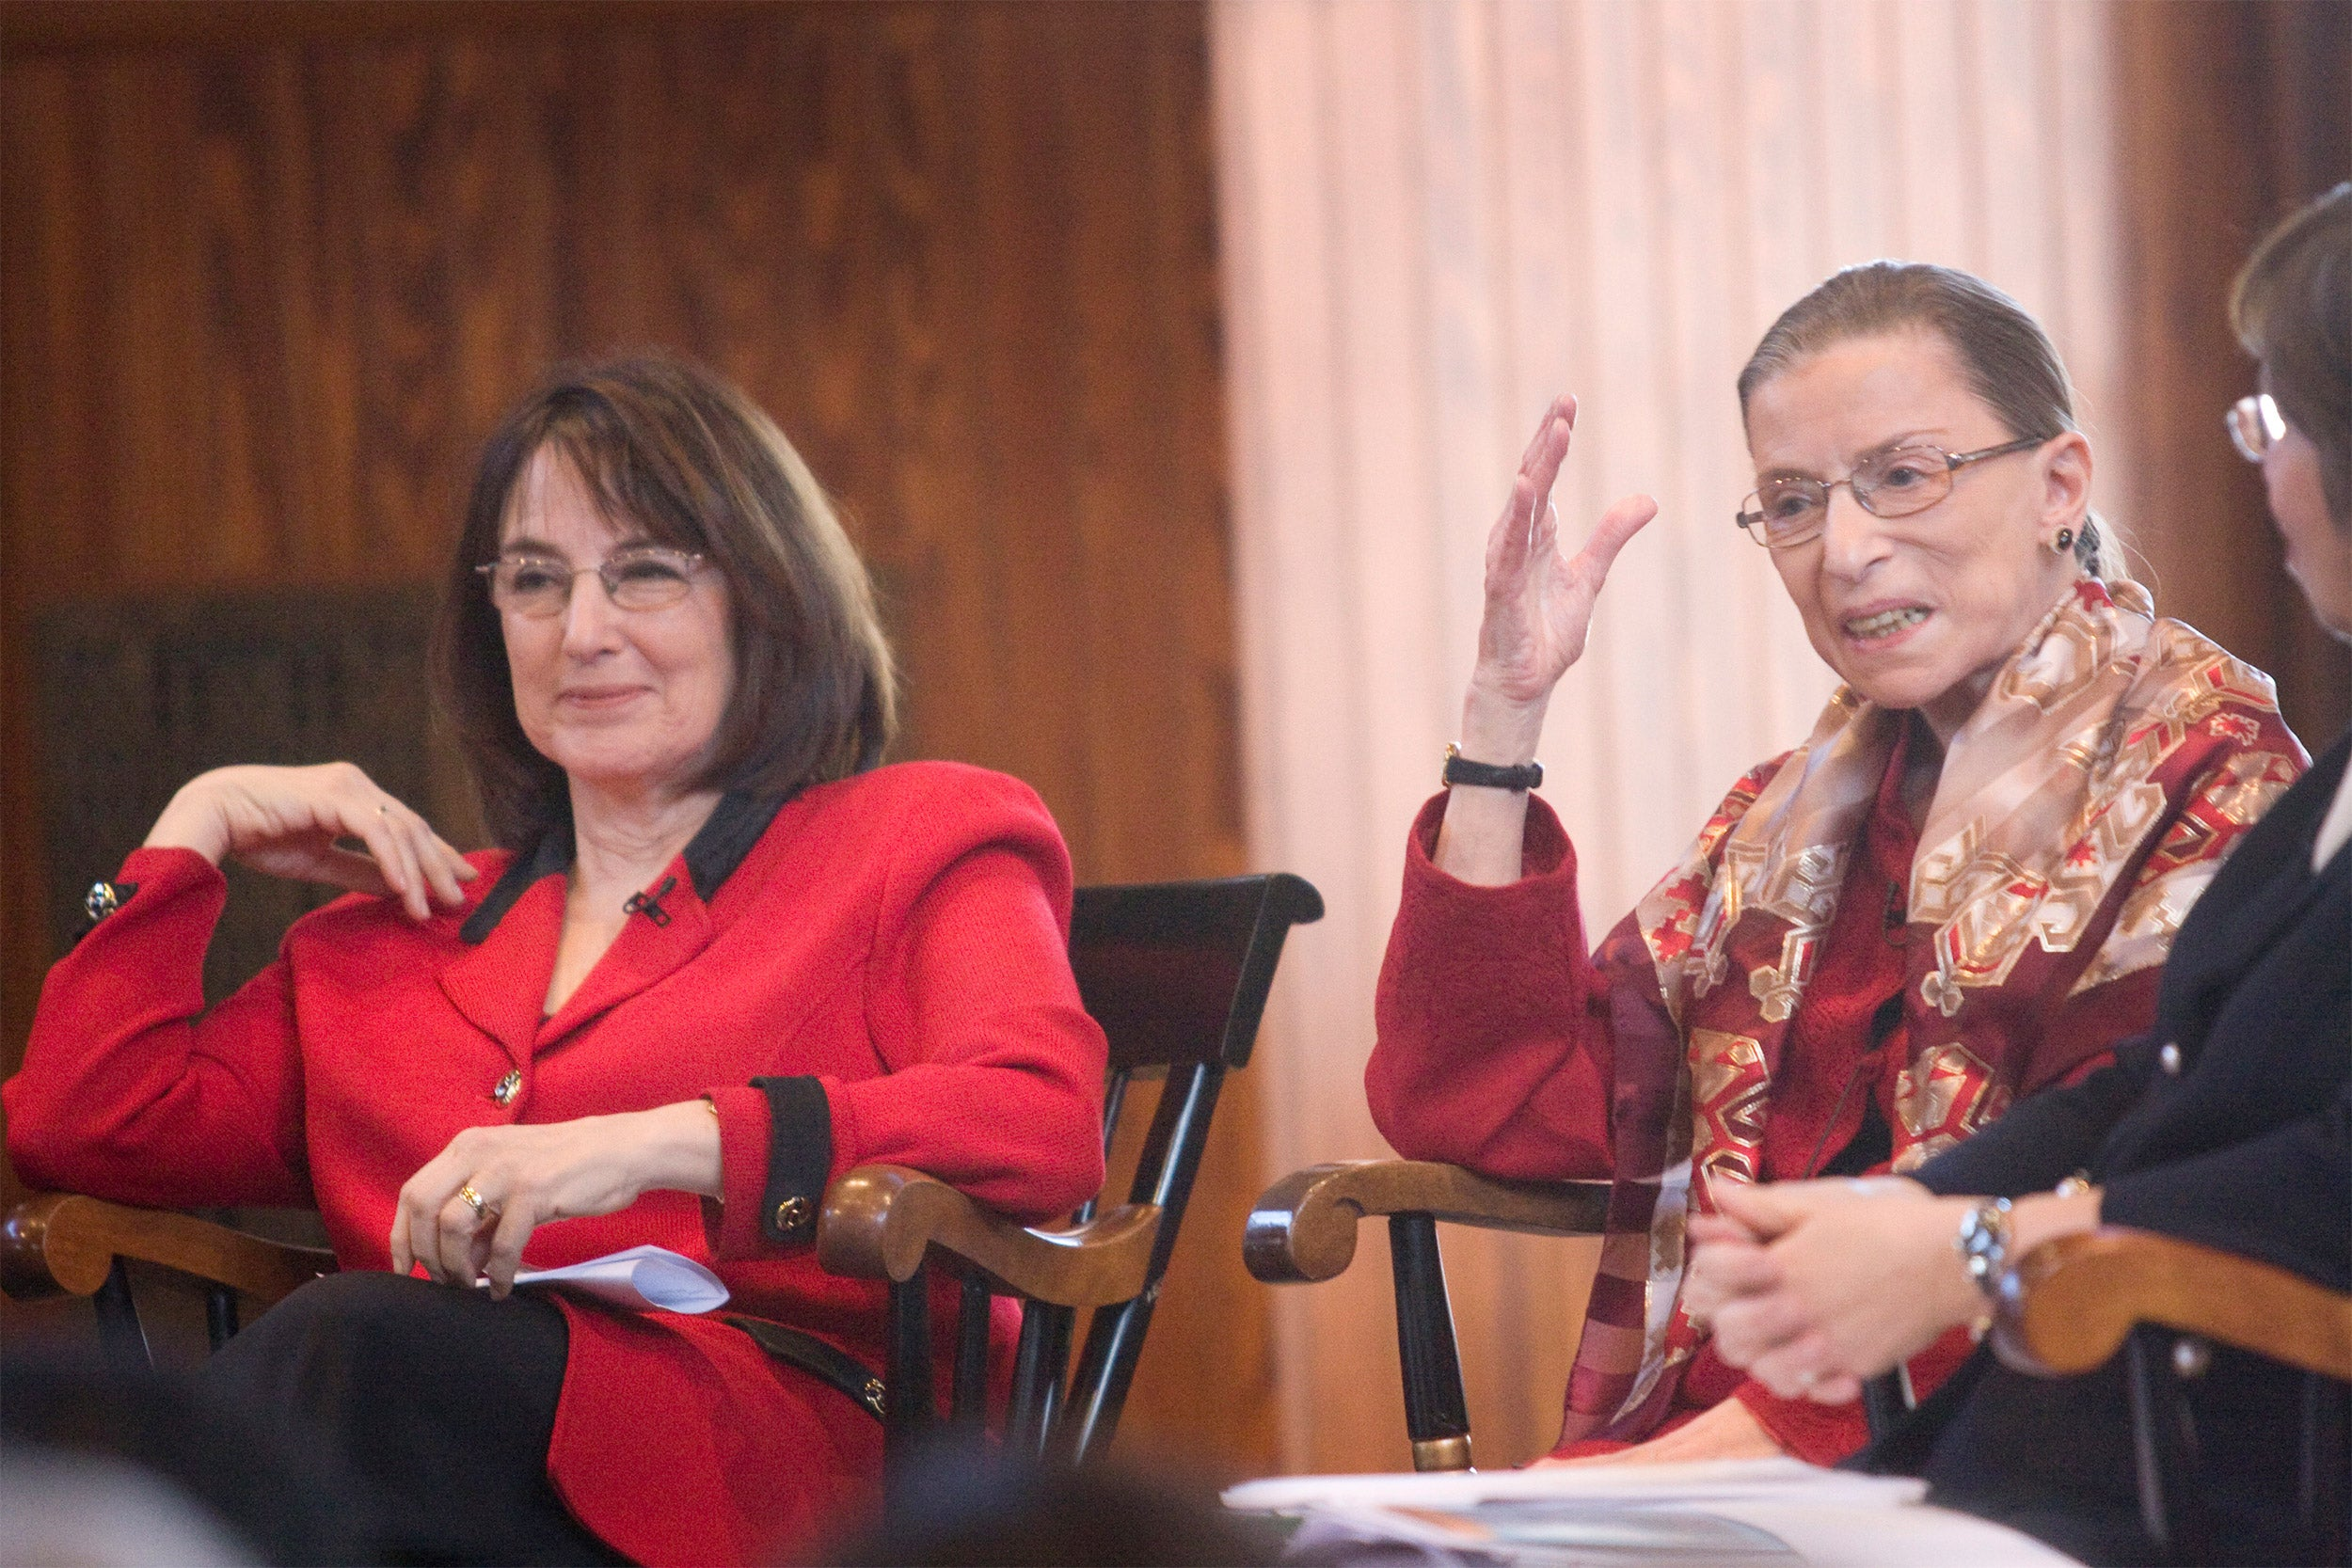 Ruth Bader Ginsburg on Harvard panel.